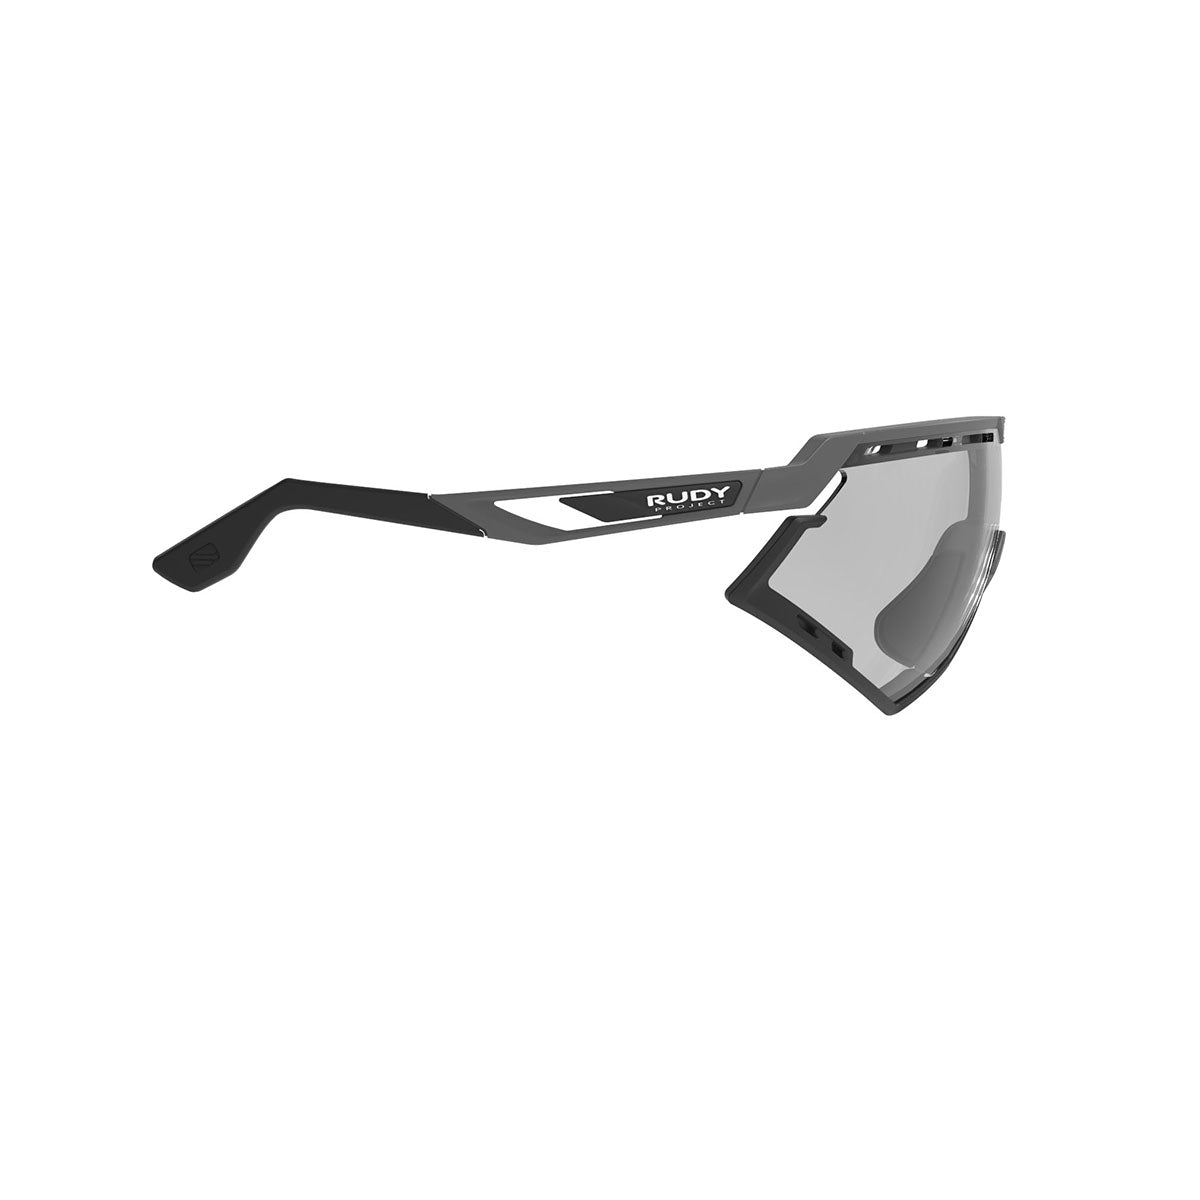 Rudy Project - Defender - frame color: Graphene - lens color: ImpactX-2 Photochromic clear to black - Bumper Color: Black - photo angle: Side Variant Hover Image